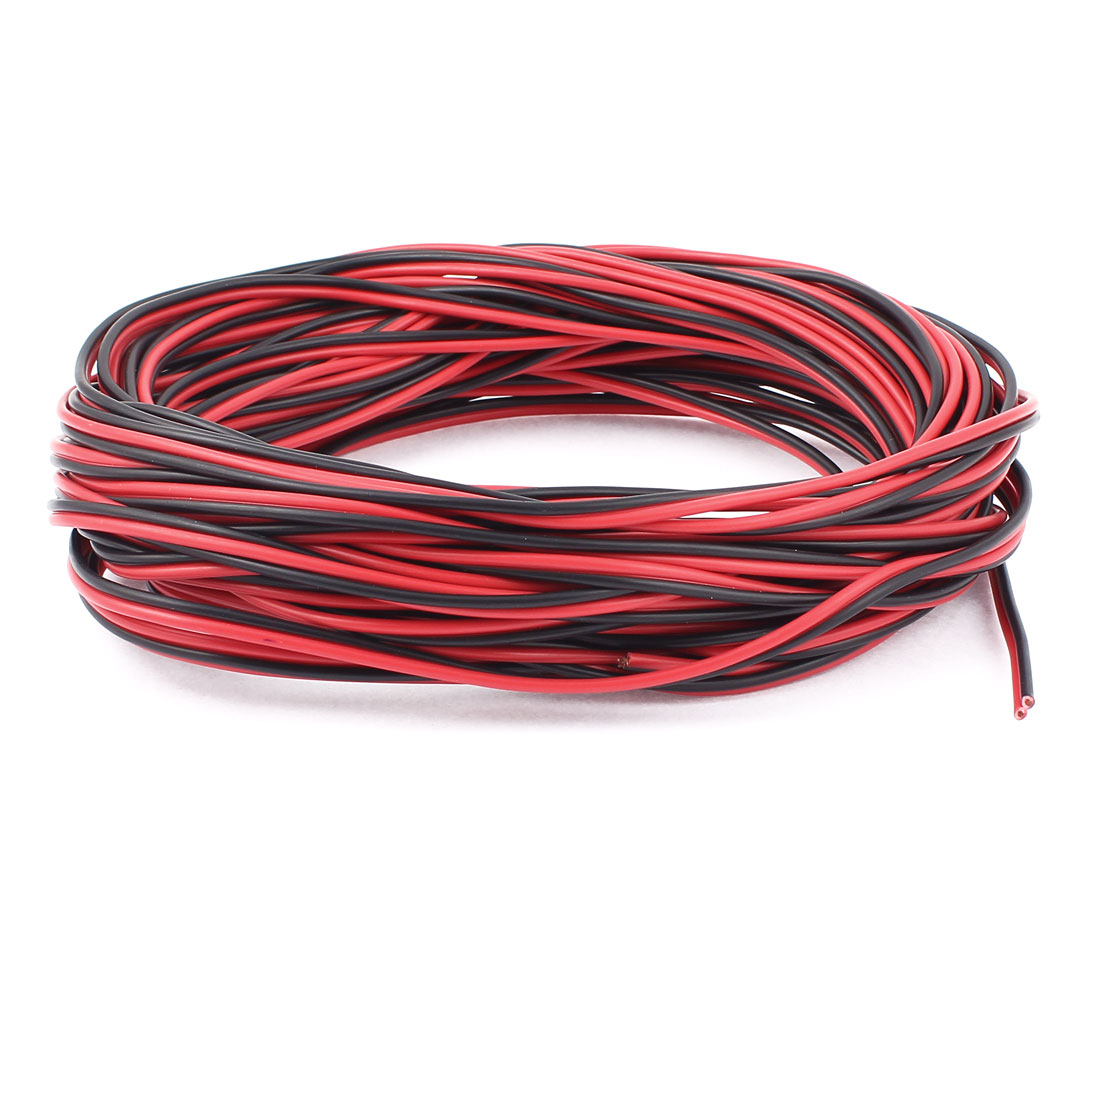 AC 220V 20M 1mm2 PVC Stranded Electronic Wire Cable Black Red